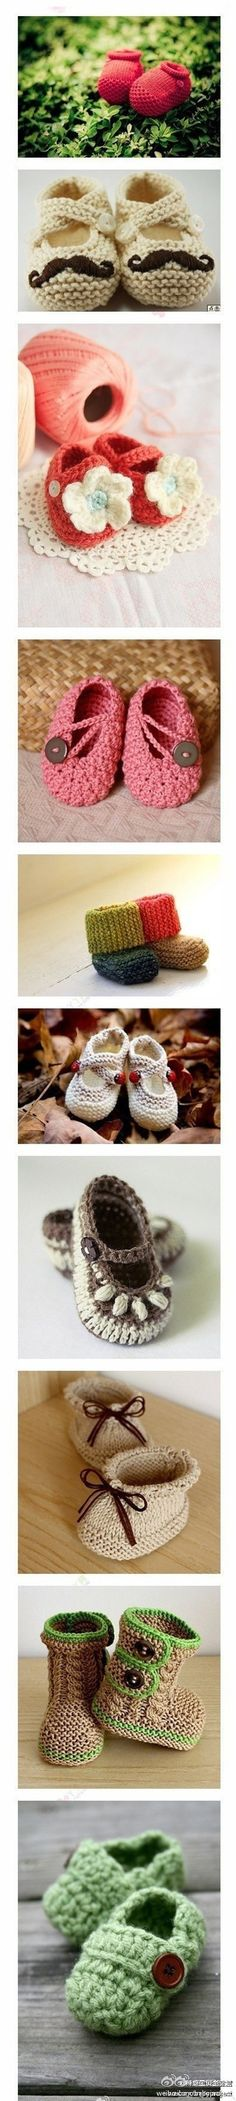 crotchet baby shoes.